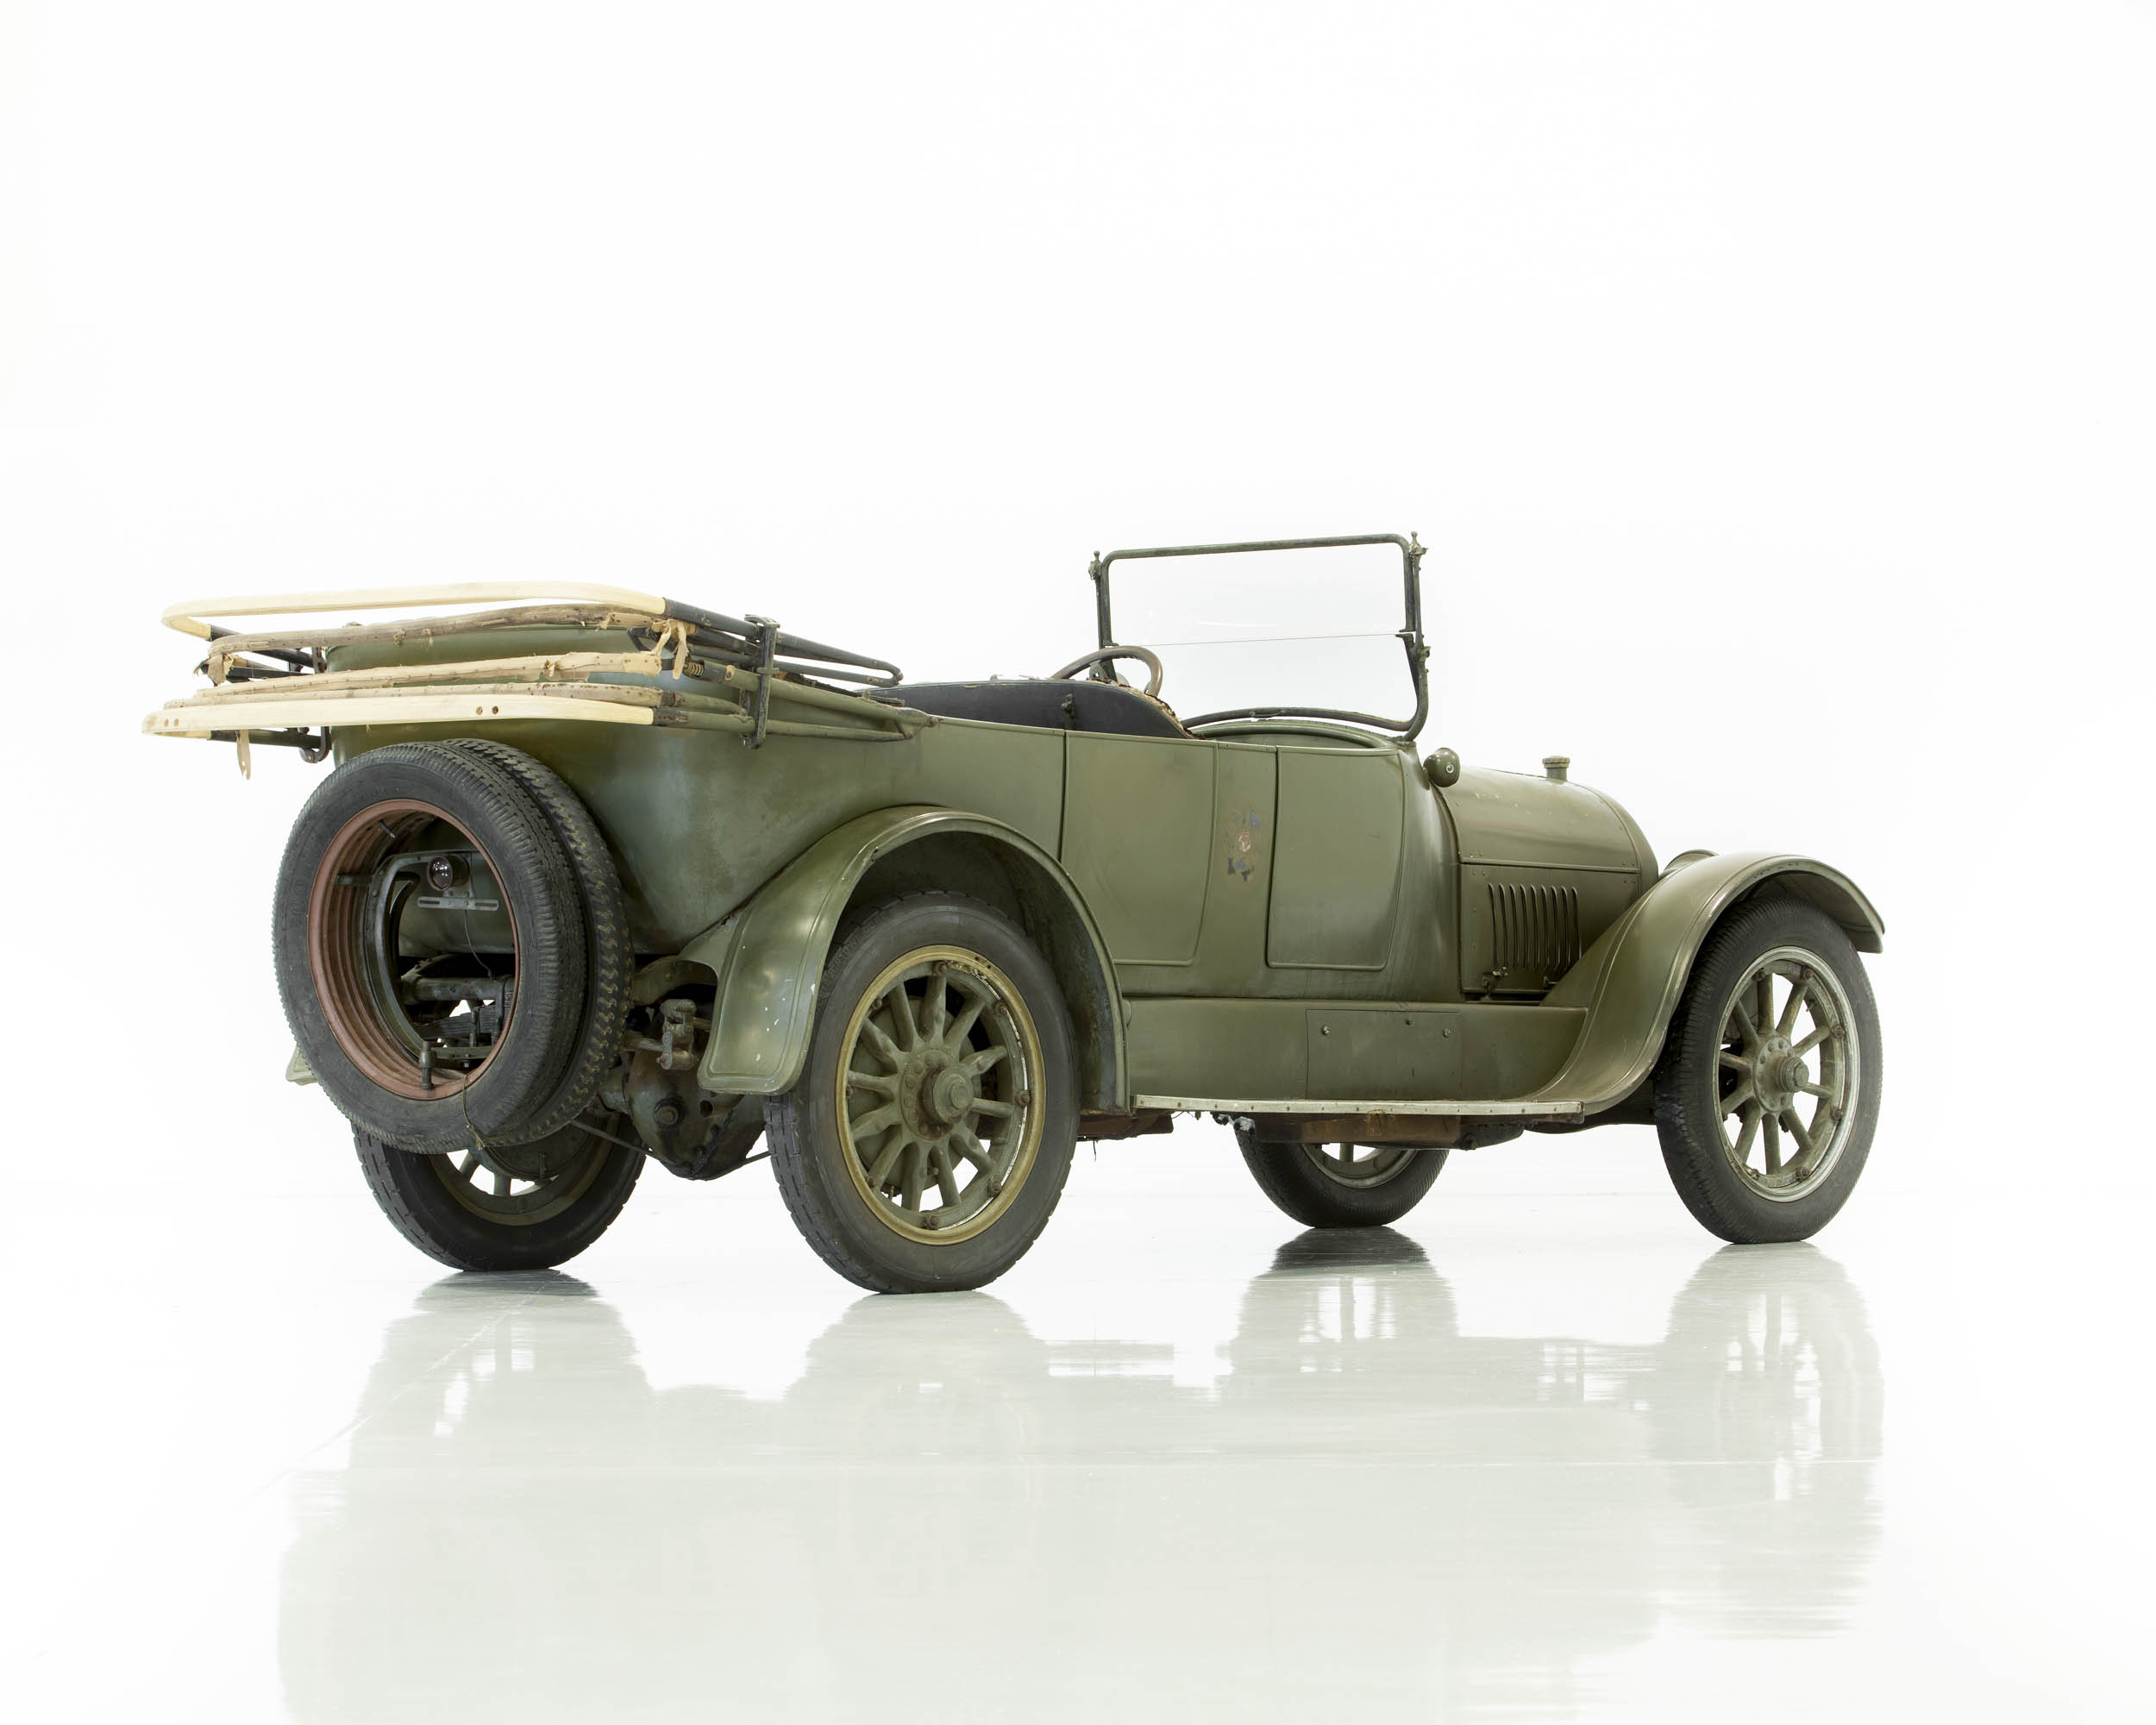 The Denison Cadillac remained in the Army Motor Service Pool until Dr. Dennison reclaimed it in 1920.